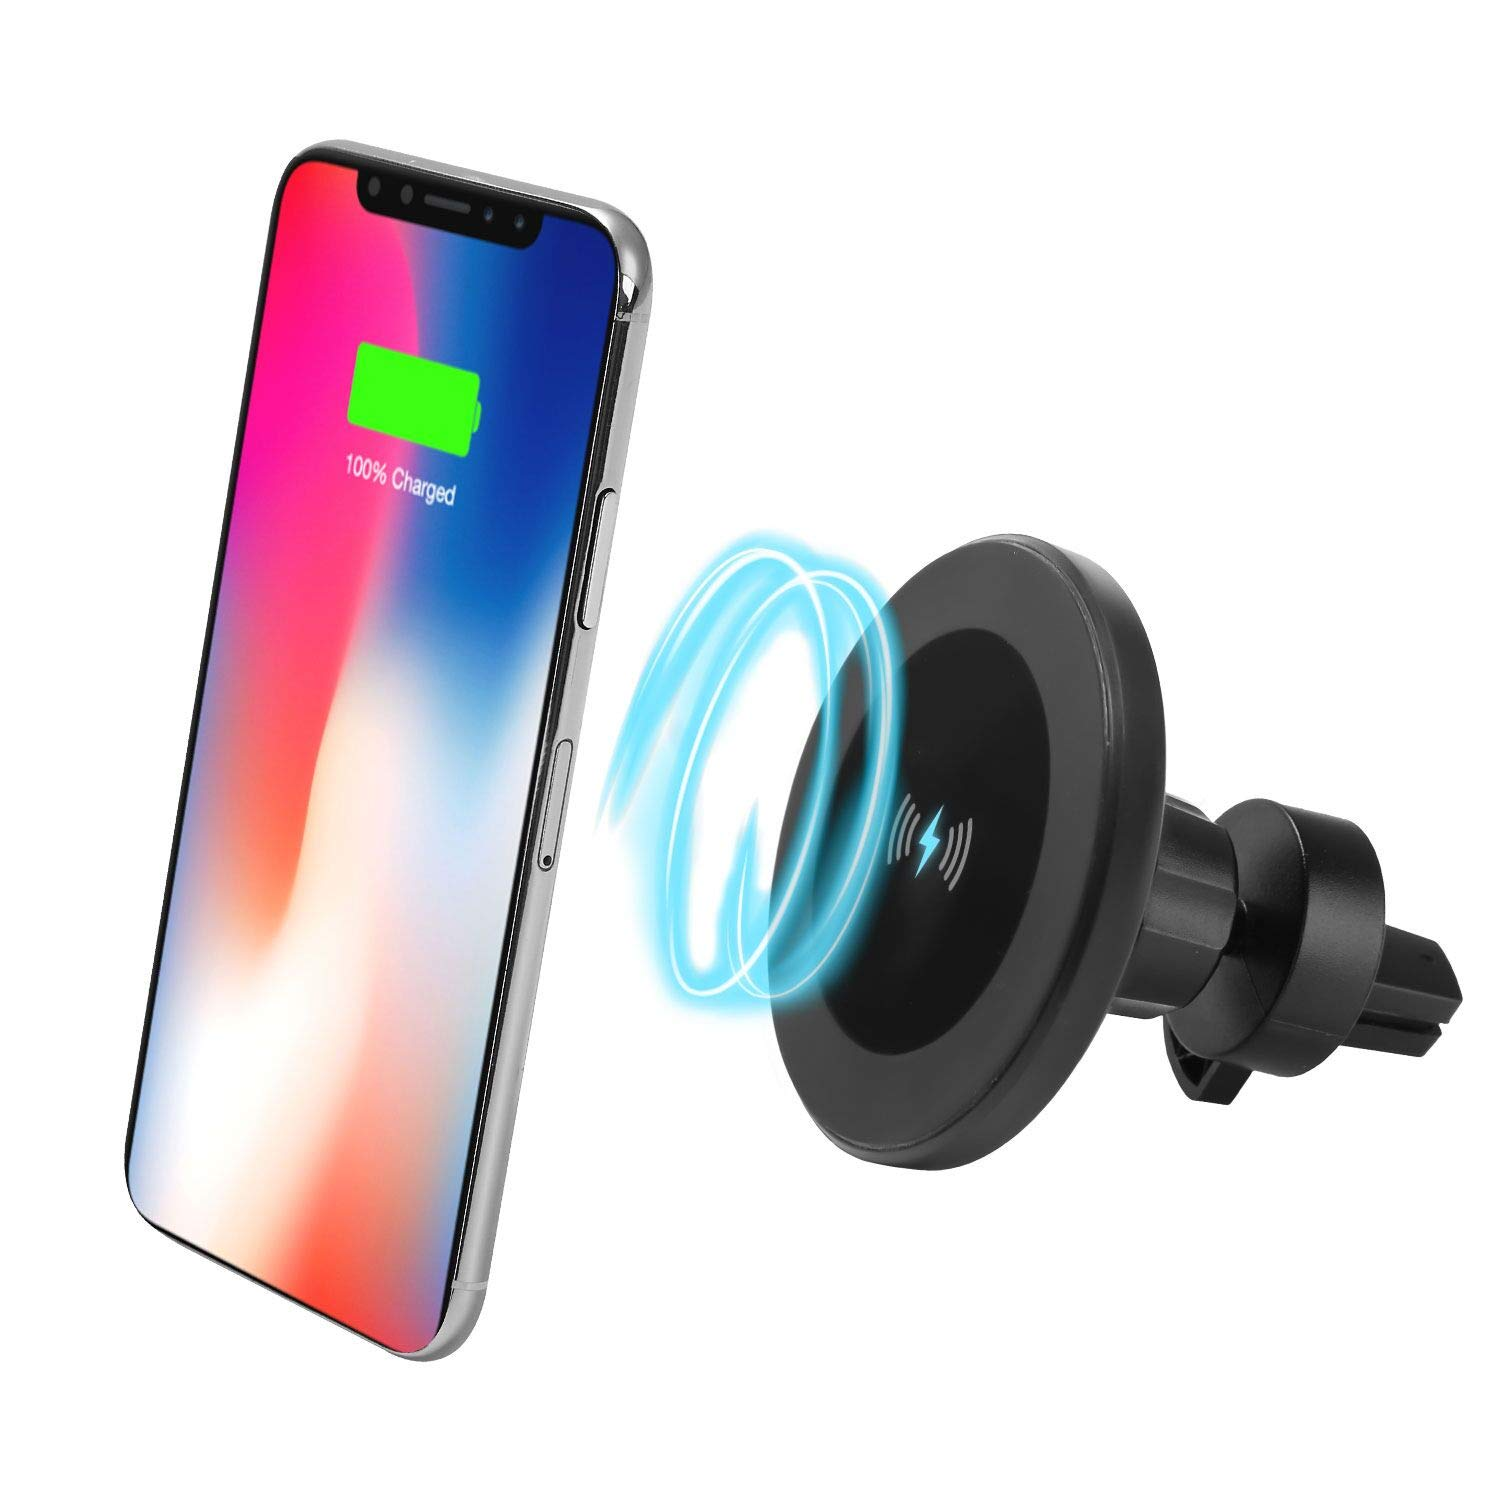 S8 S8 S8 Plus S7 S7 Edge S6 Edge Plus Note 8、Apple iPhone X//8//8 Plus and All QI-Enabled Devices No Car Charger XINLON Magnetic Fast Wireless Car Charger,Wireless Charging for Samsung S9 S9